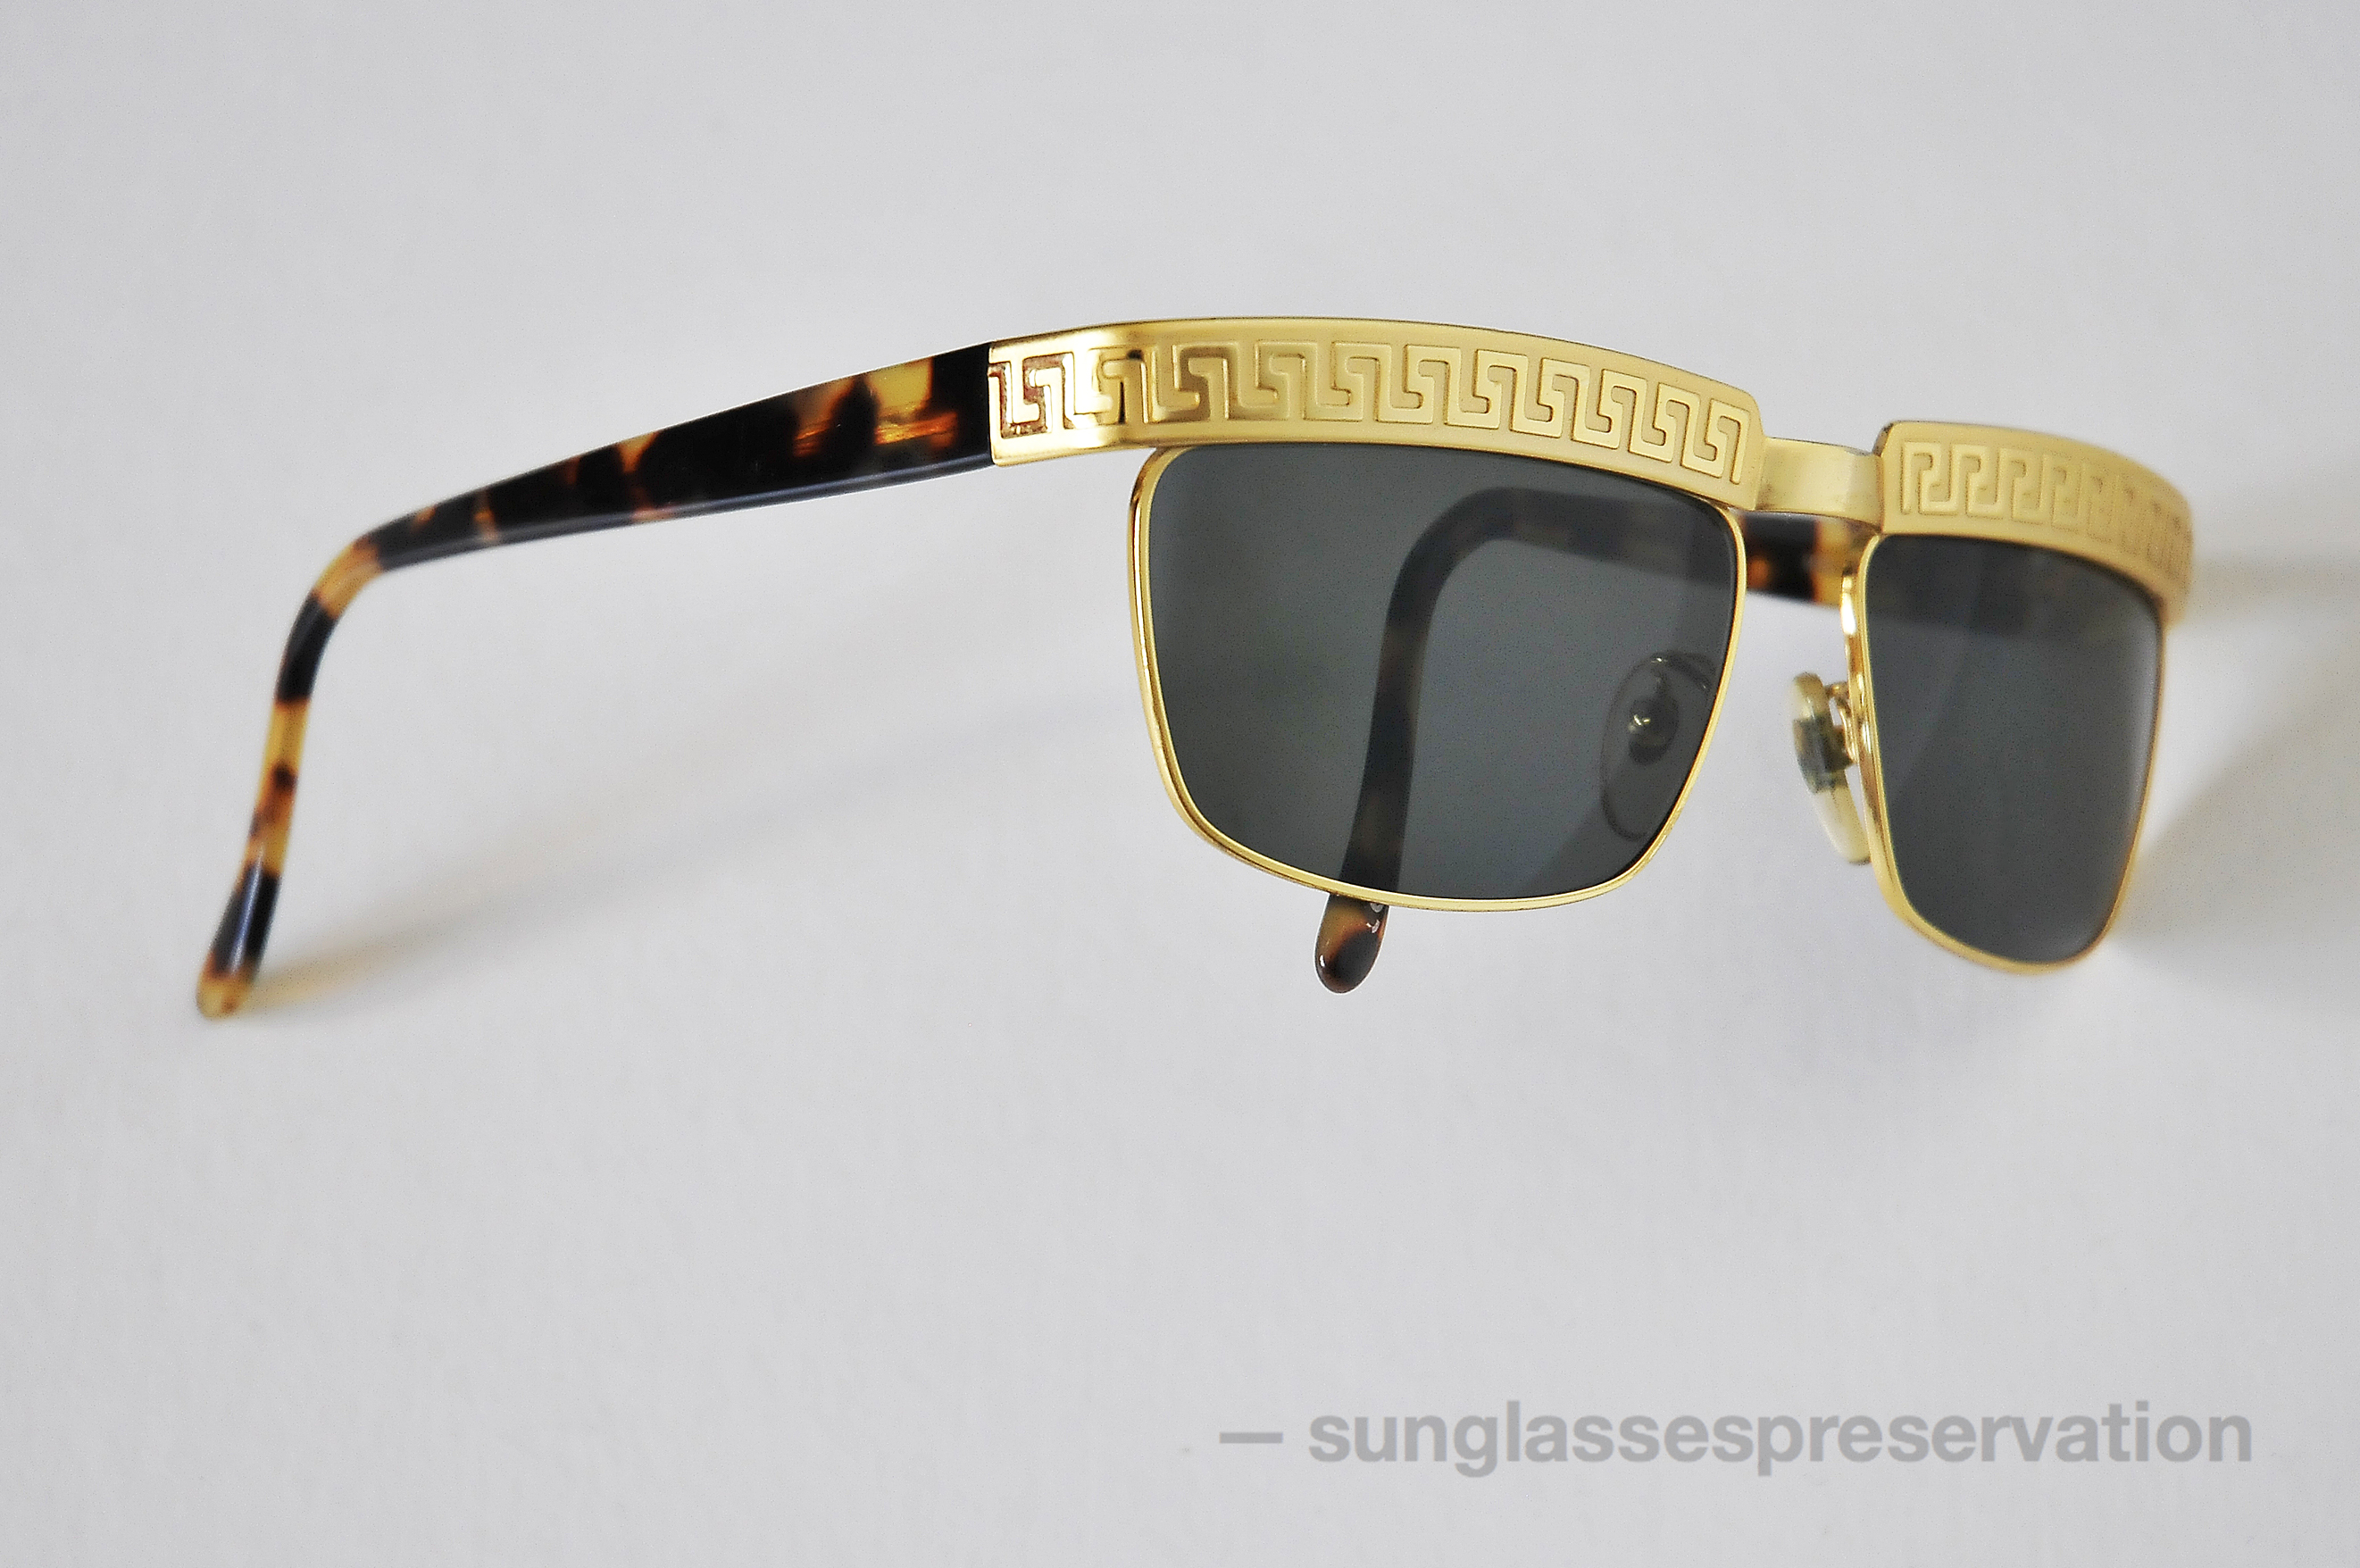 Versace Sunglasses Gold Frame : VERSACE model S 82 col. 28L 90s sunglassespreservation